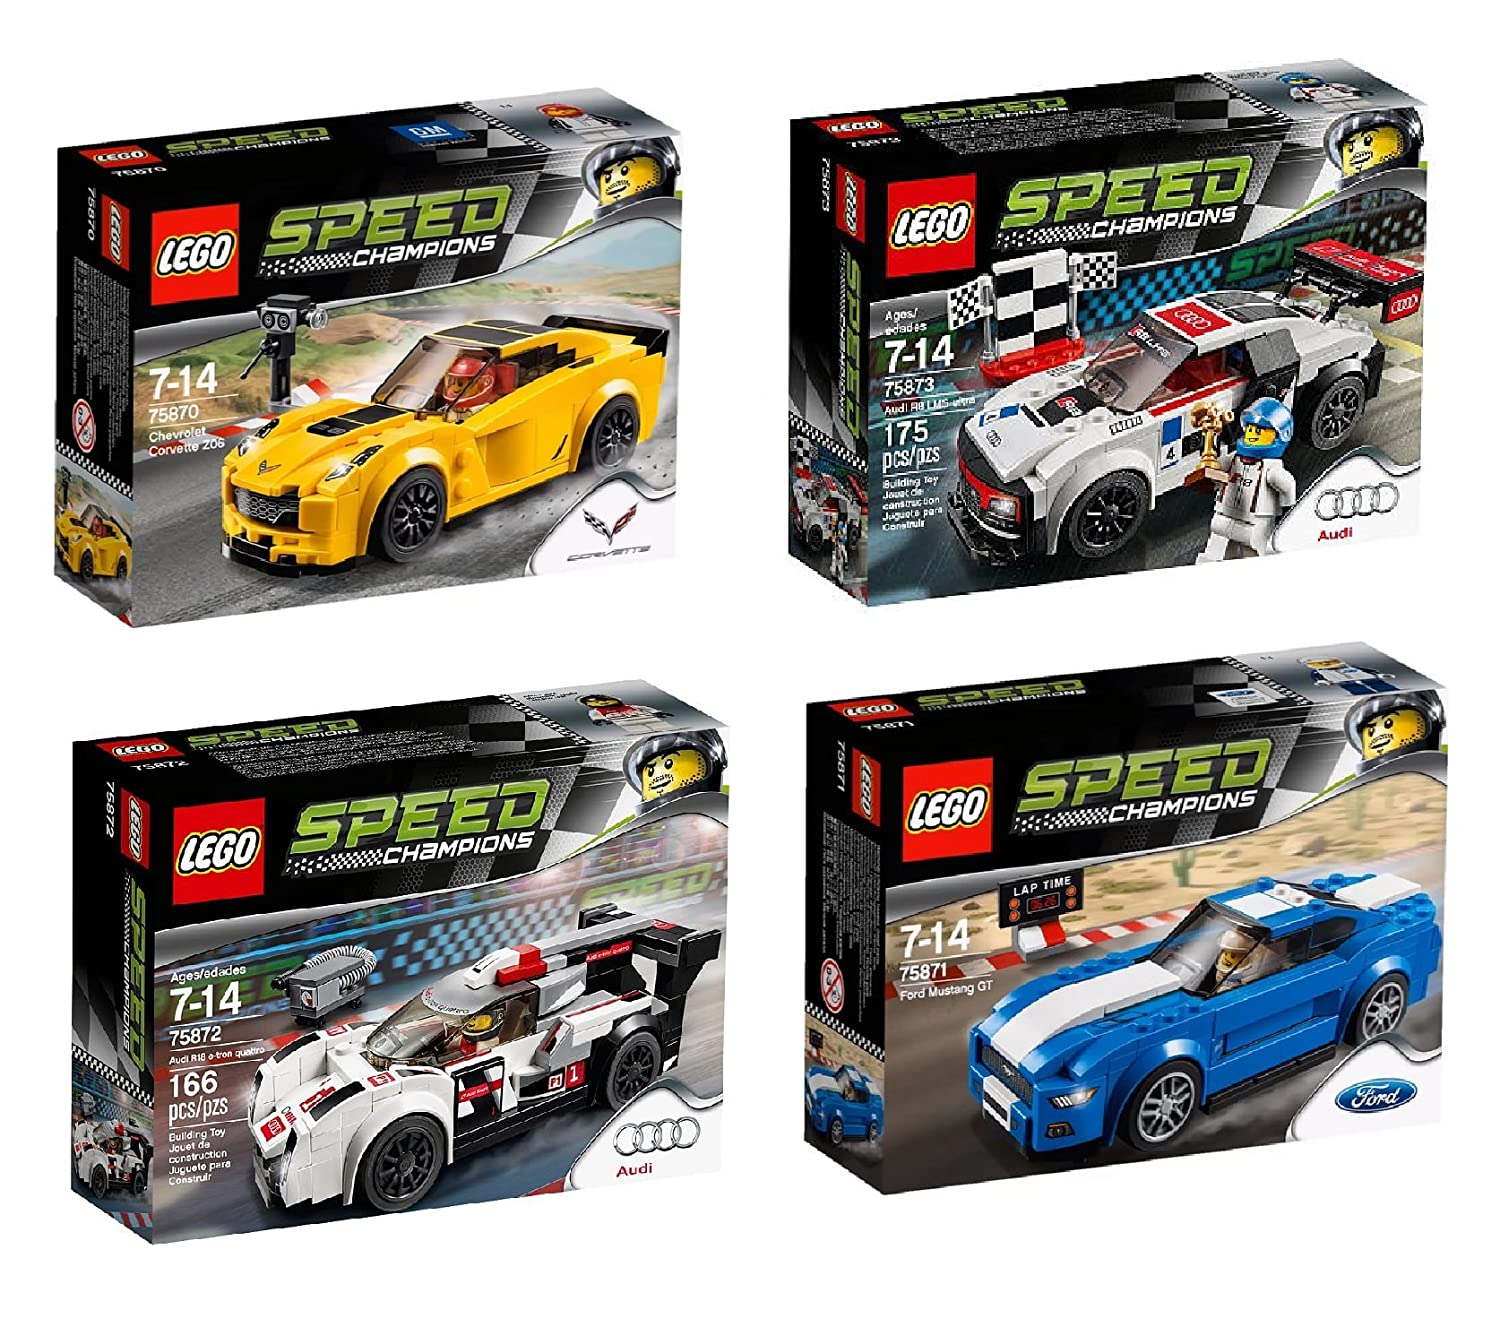 Lego Speed Champions 4 Set Toy Car Bundle Chevrolet 75873 Audi R8 Lms Ultra Corvette Z06 75870 Ford Mustang Gt 75871 R18 E Tron Quattro 75872 And